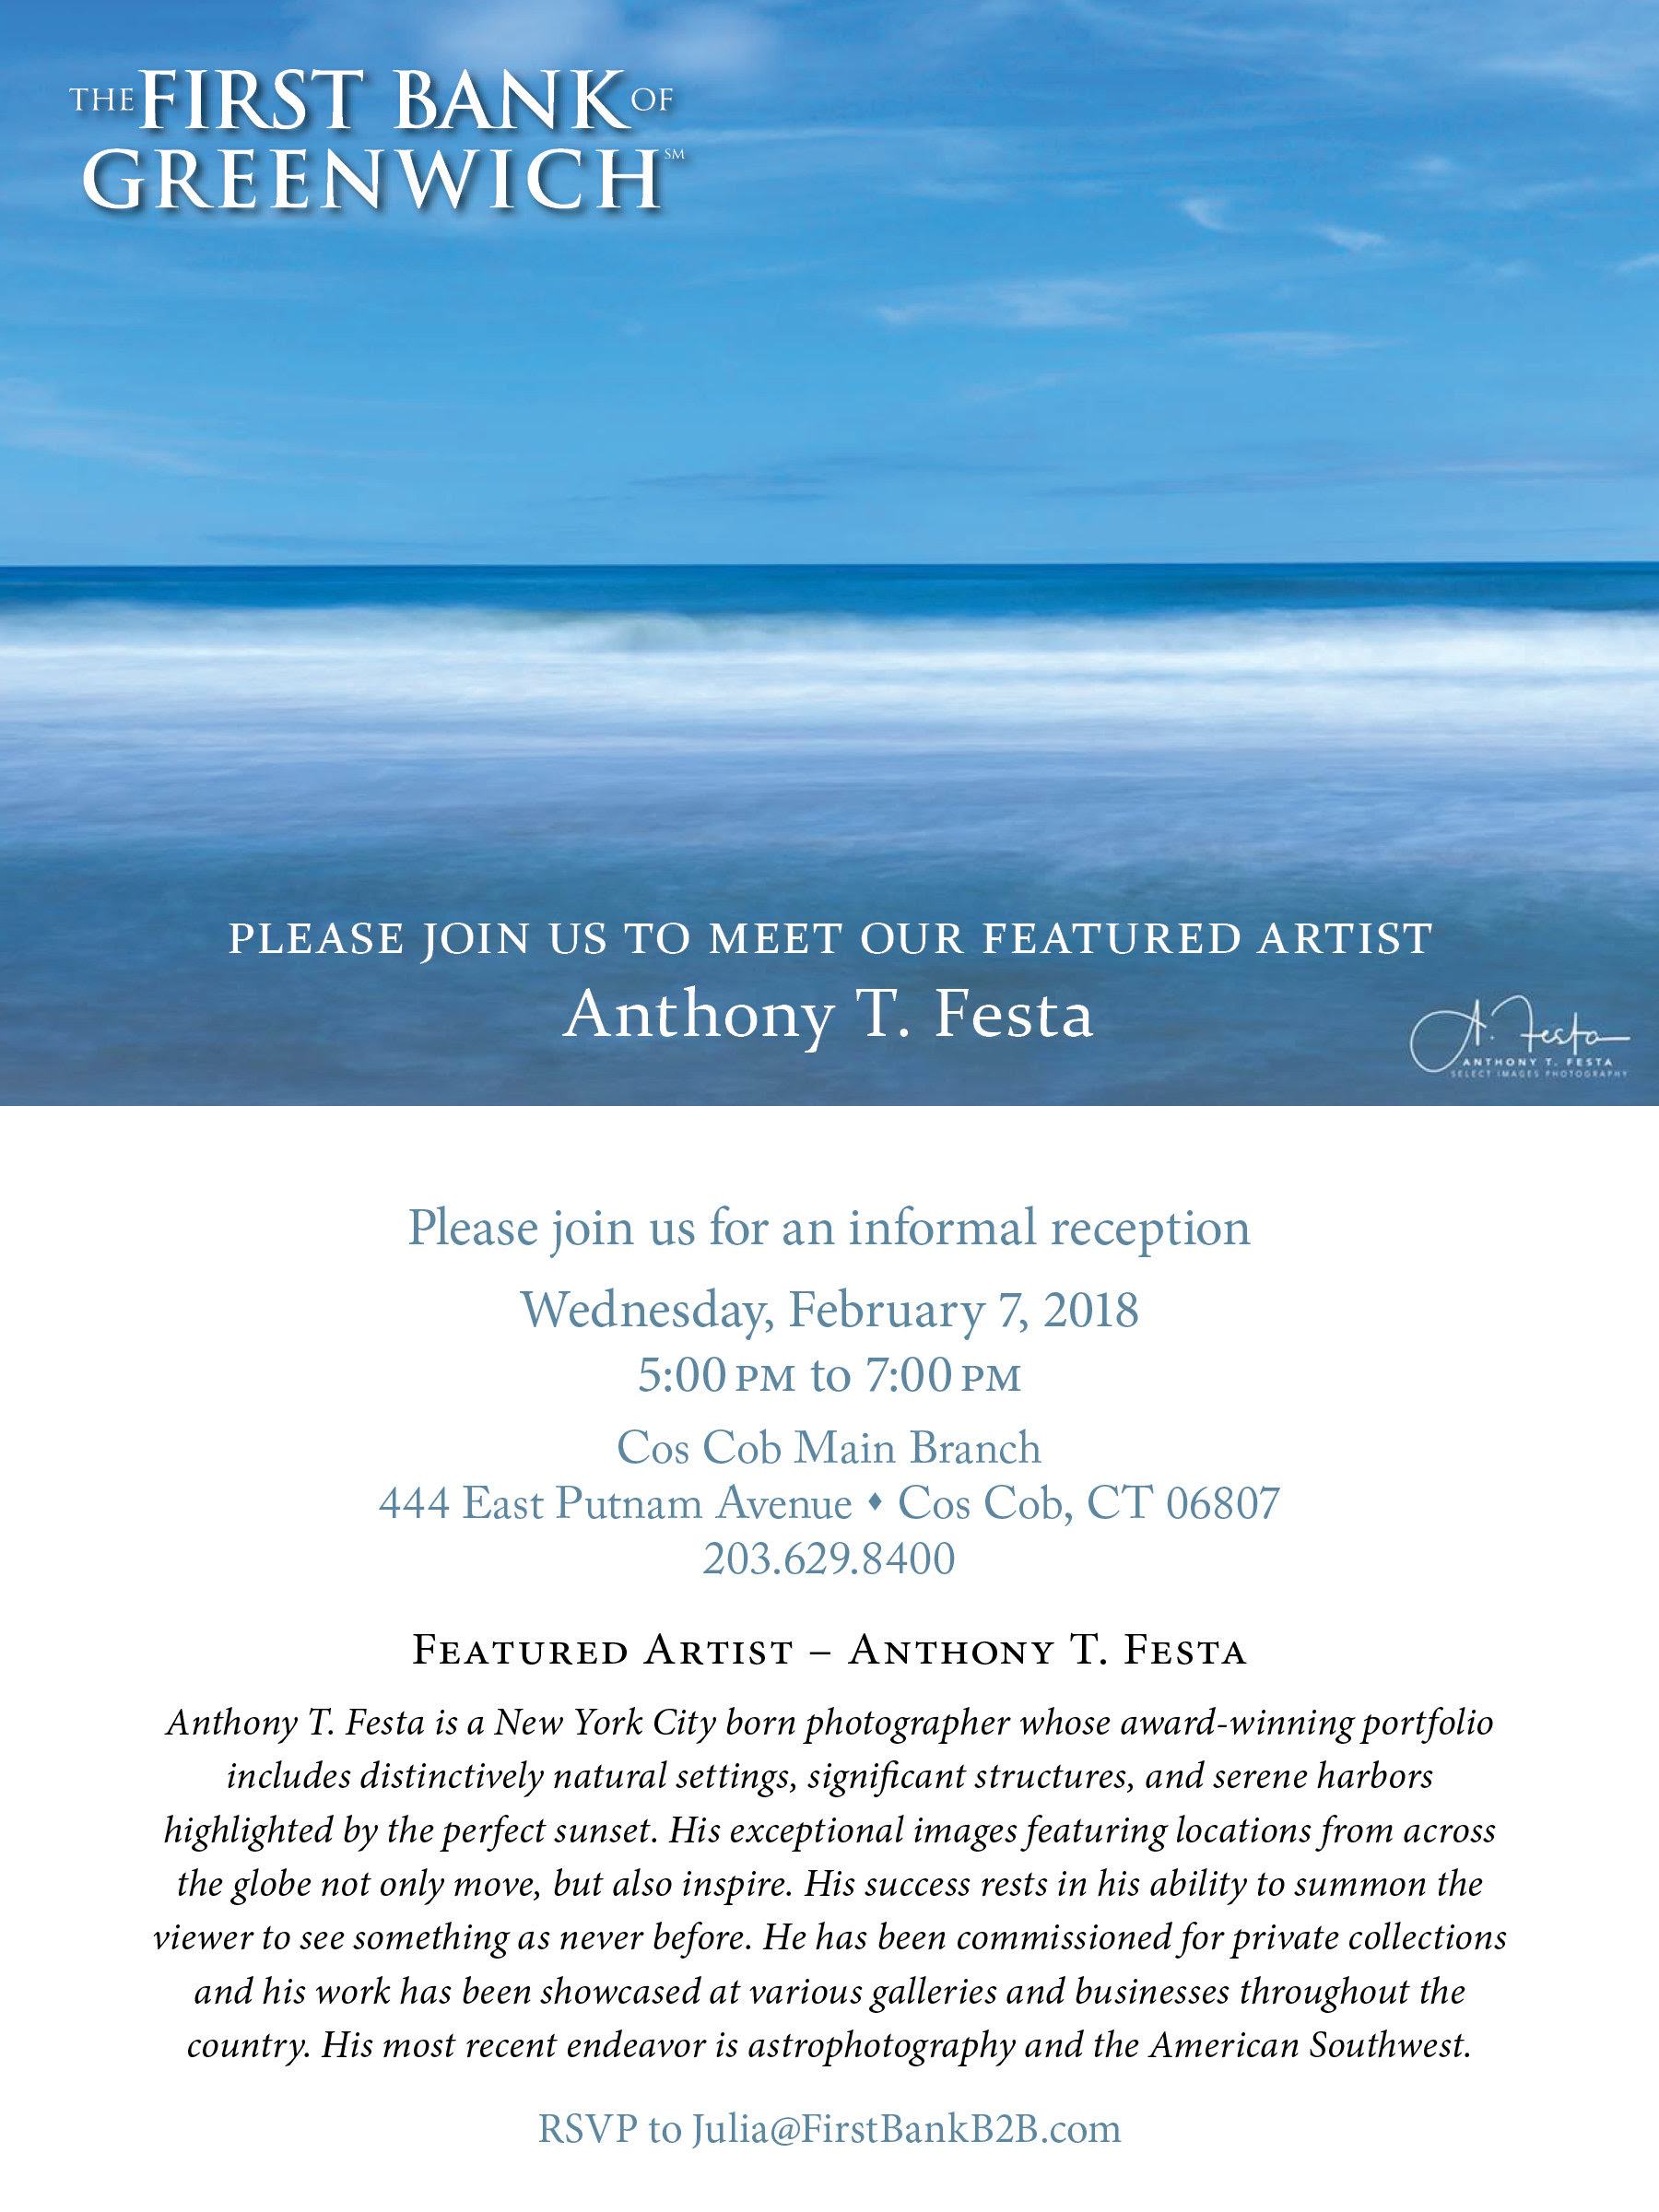 Artist Reception – Anthony Festa at First Bank of Greenwich Cos Cob Branch